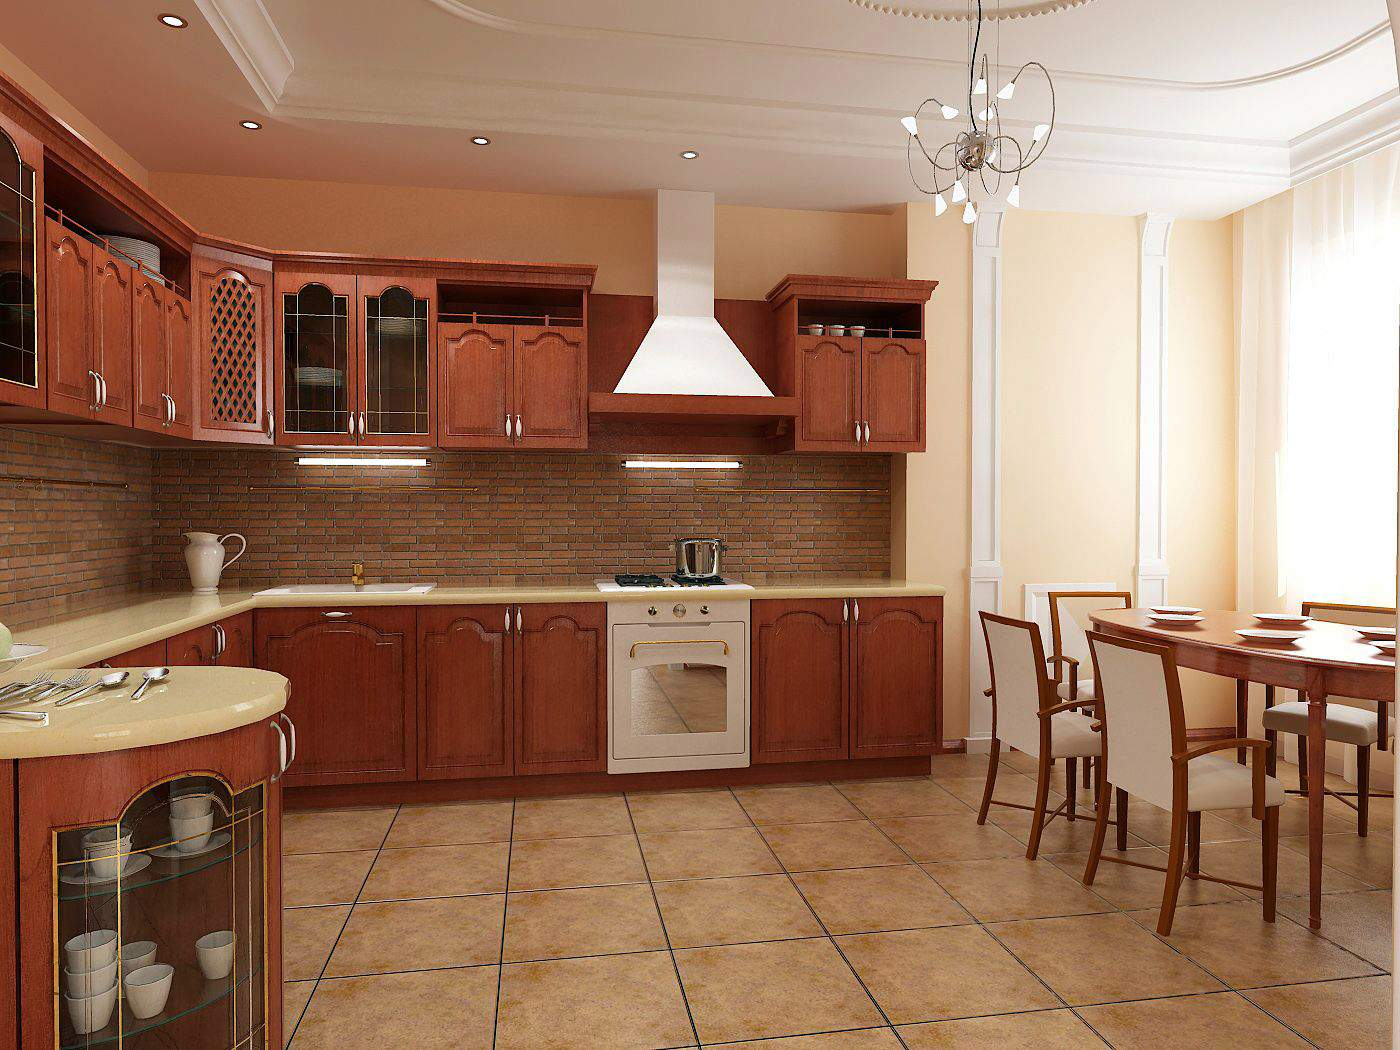 Small Interiors Of Basic Kitchen Design (View 2 of 16)